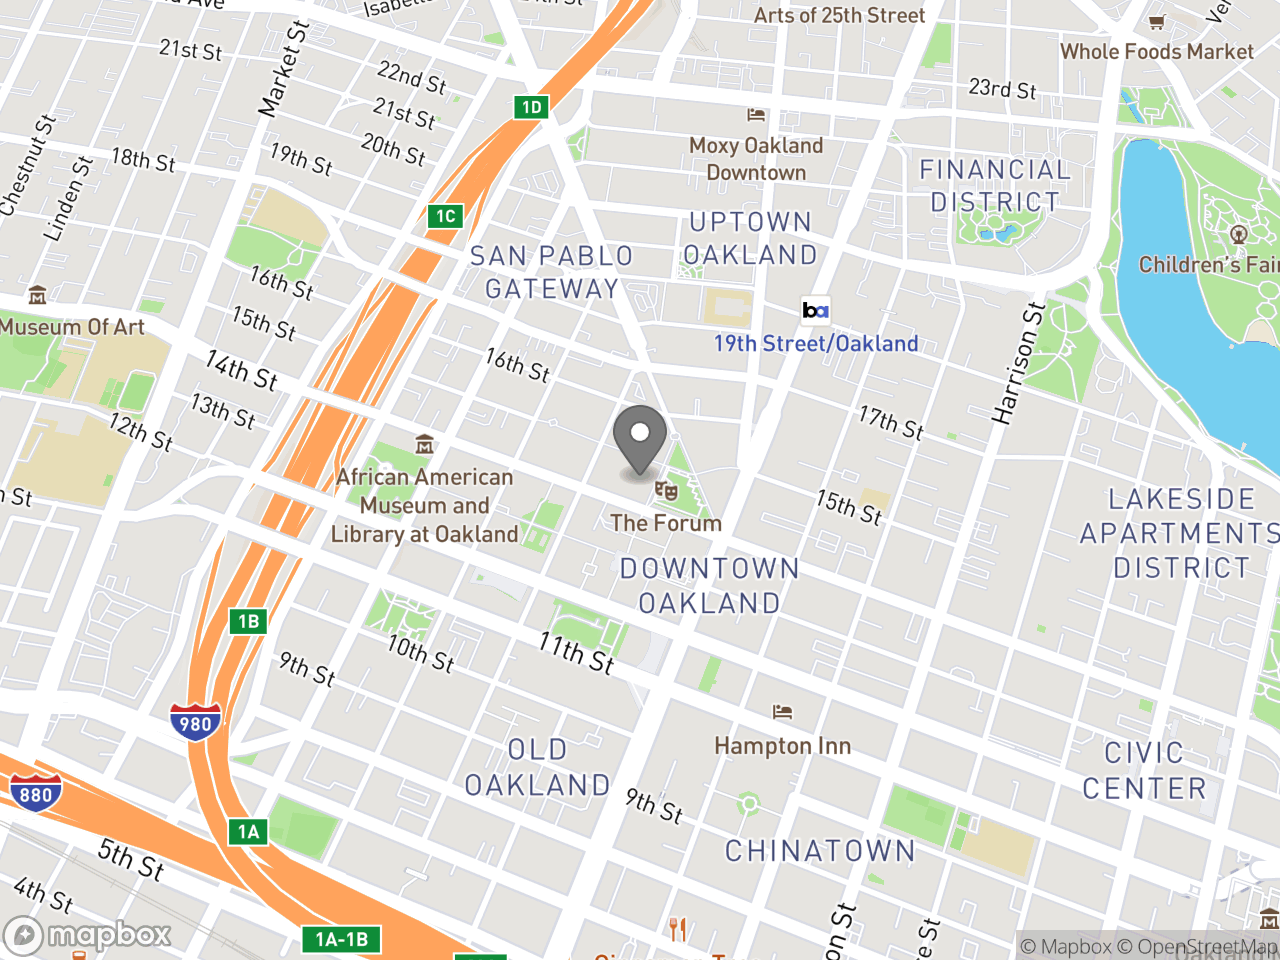 Map location for Landmarks Preservation Advisory Board, located at 1 Frank H Ogawa Plaza in Oakland, CA 94612